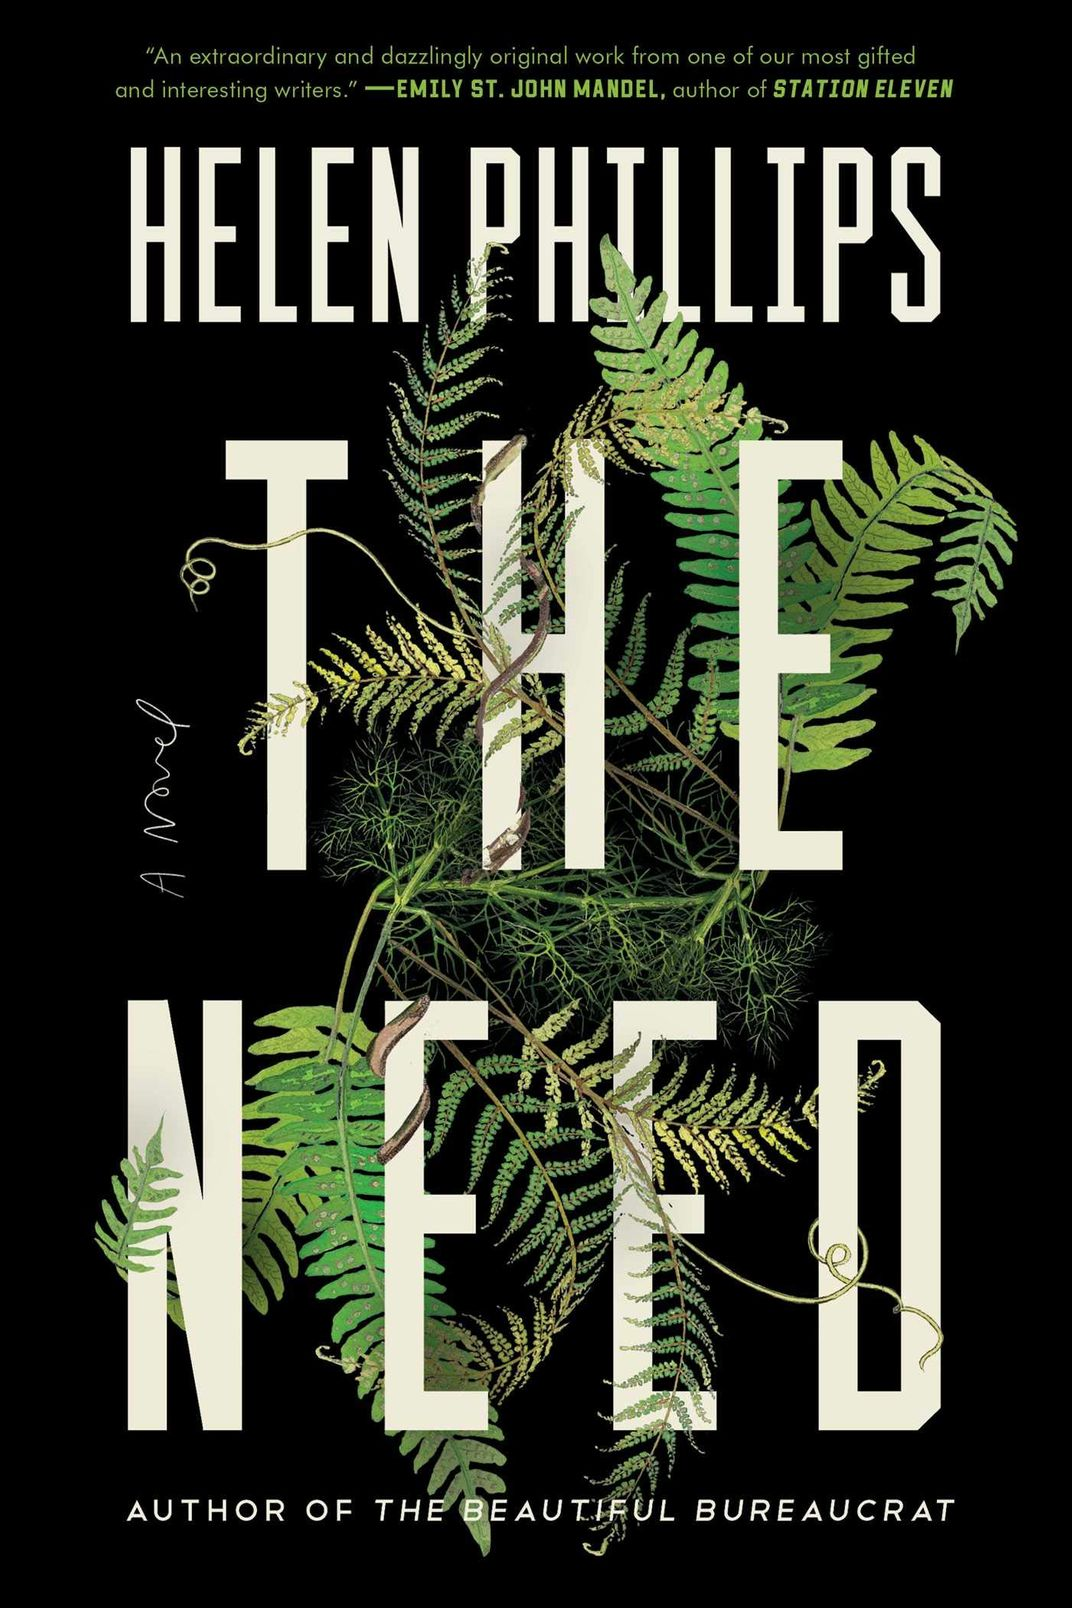 The Need, by Helen Phillips (Simon & Schuster, July 9)